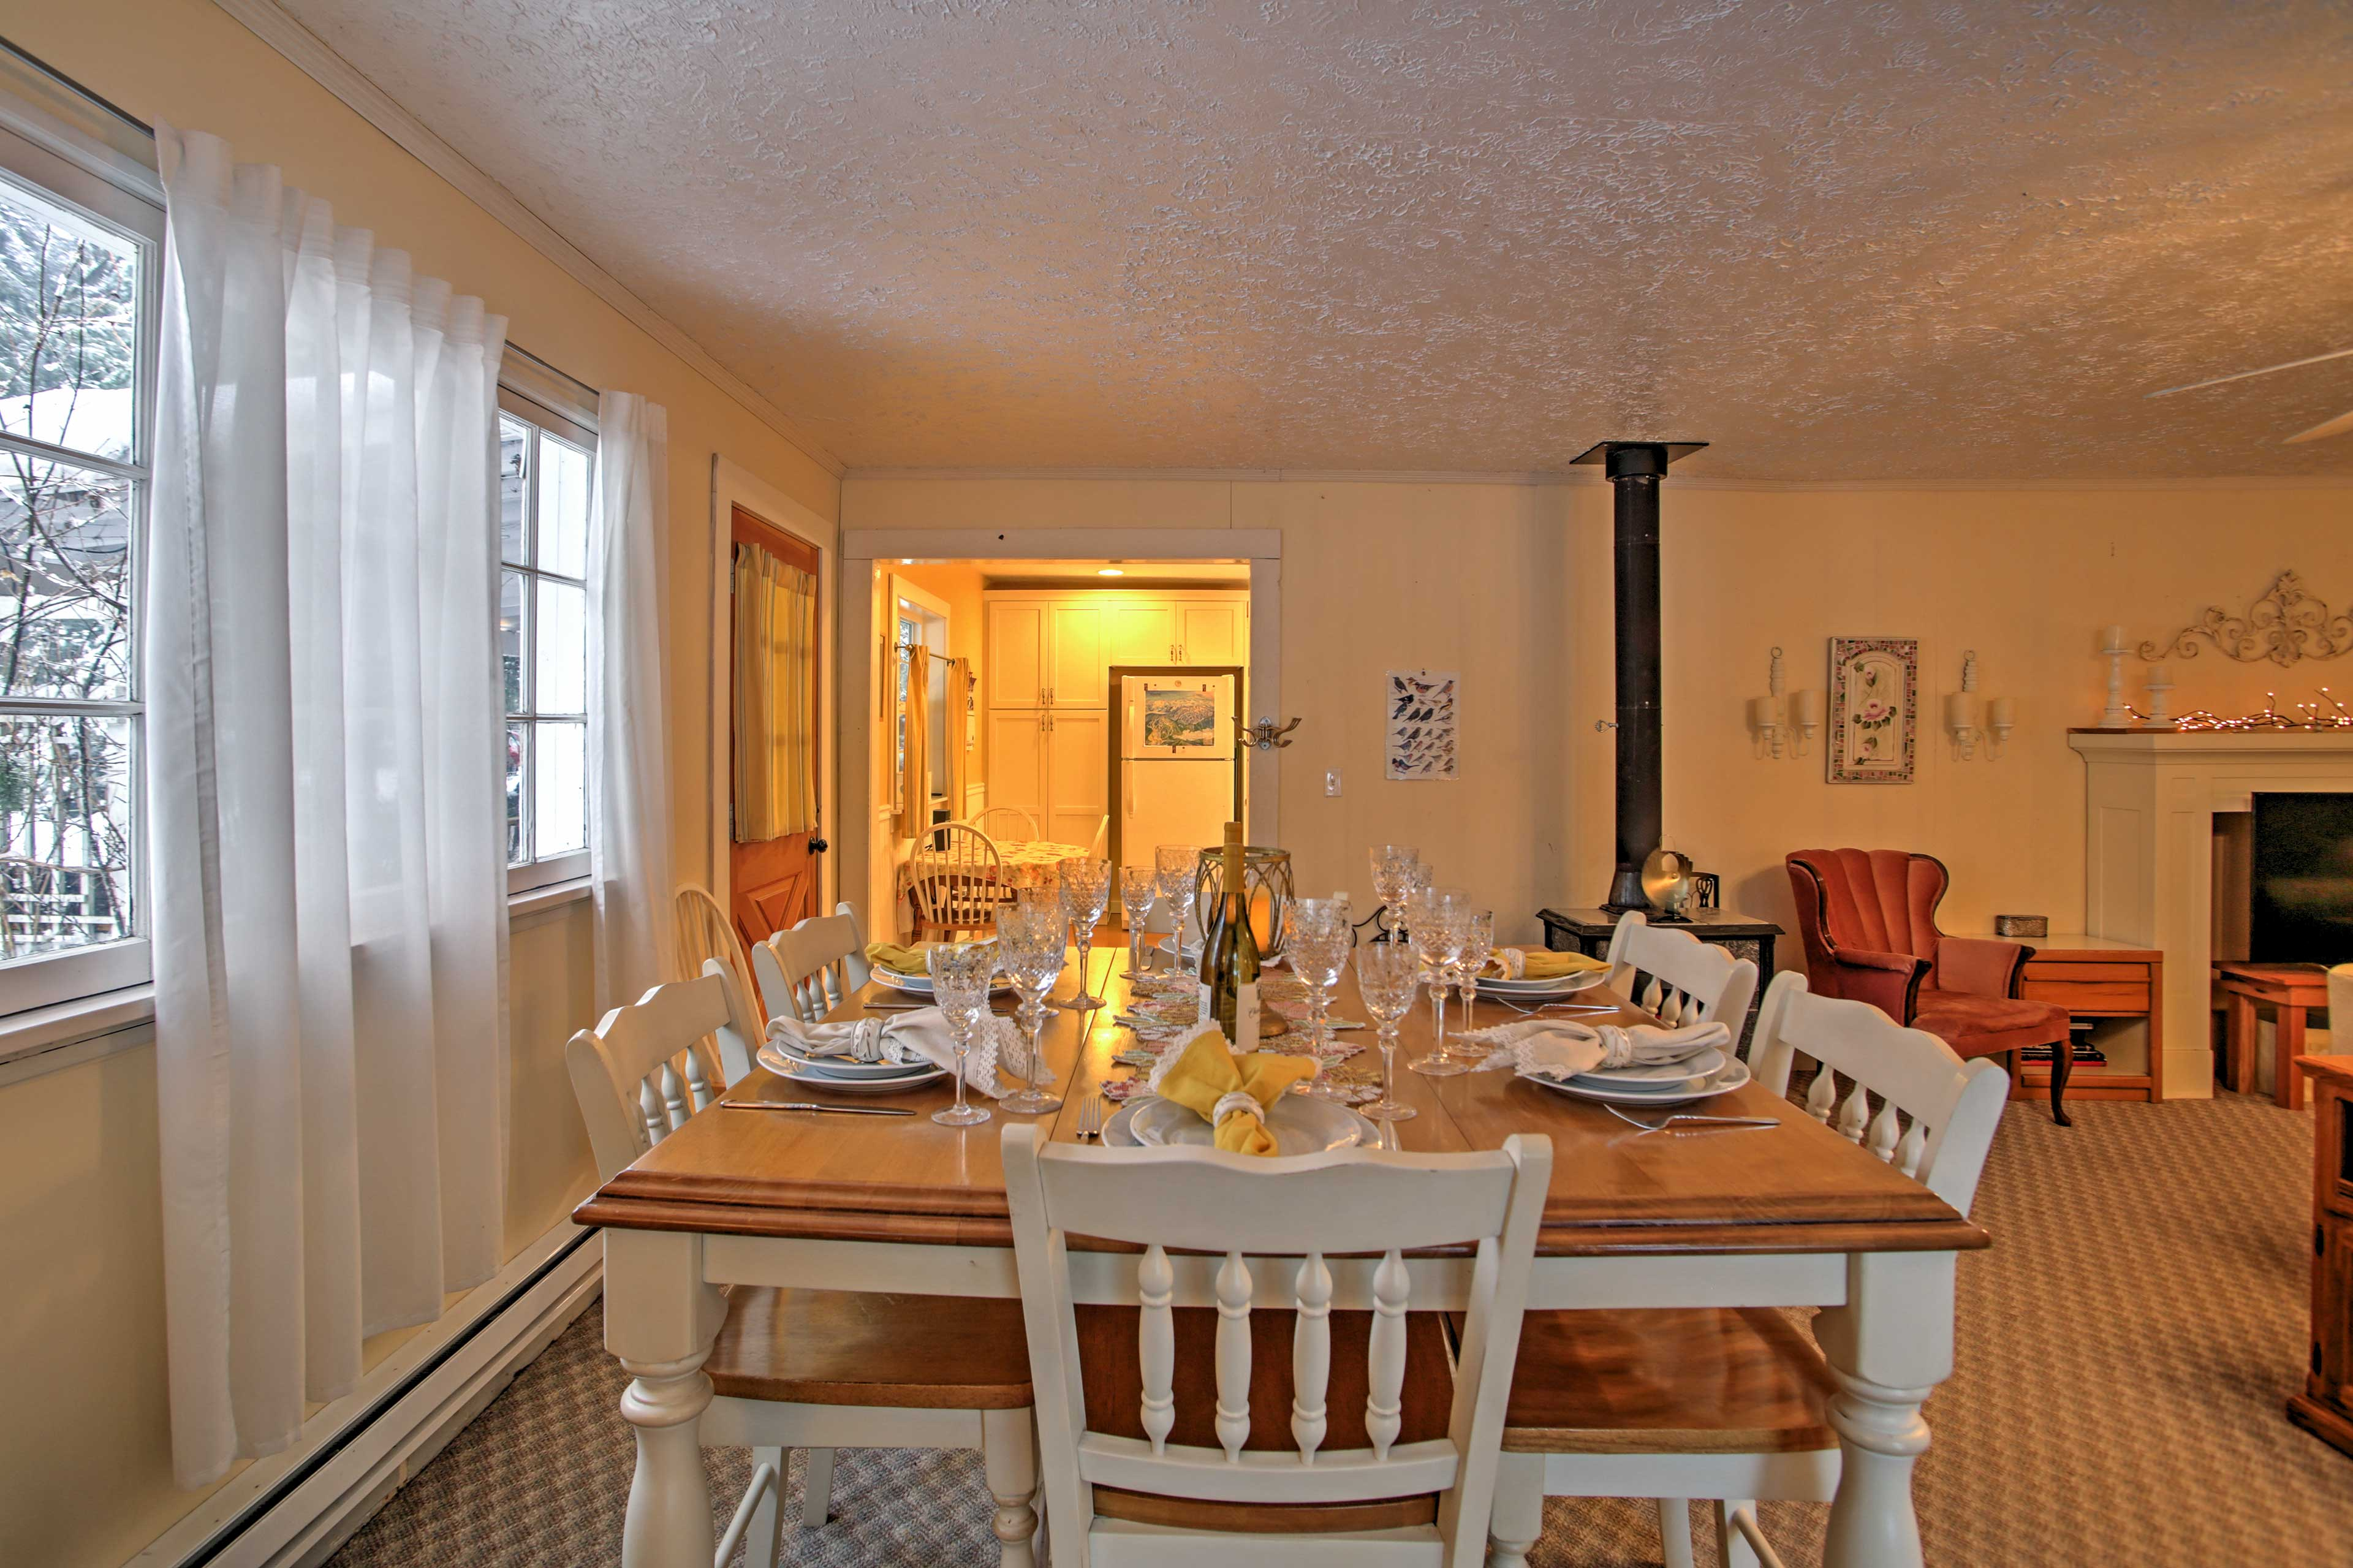 Gather around the dining table to enjoy home-cooked meals.